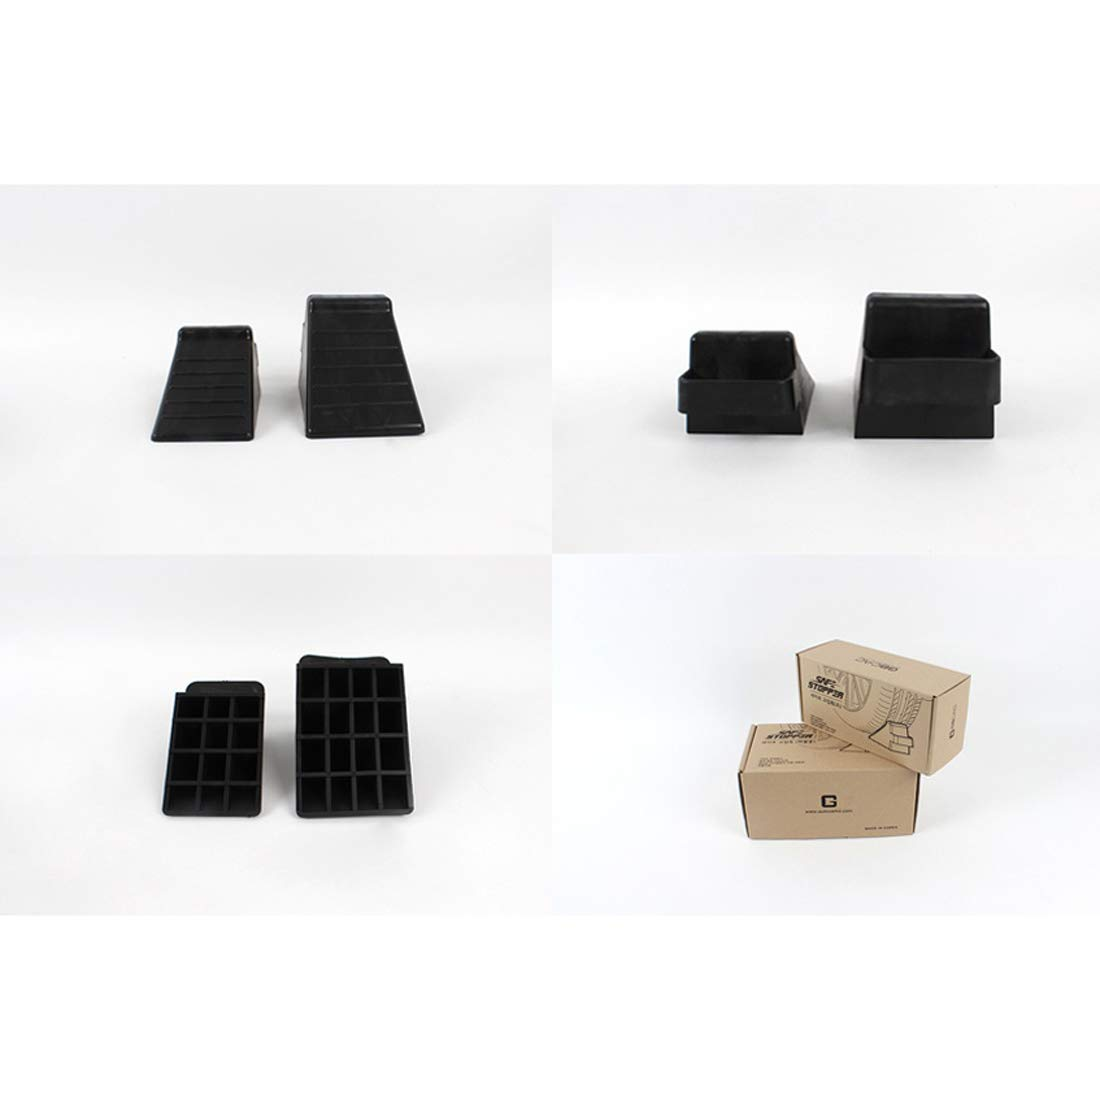 GB 2PCS of Tire Crutch Wheel Chocks for Car Truck Stopper Block Set (Large) by [GBOEM] (Image #7)